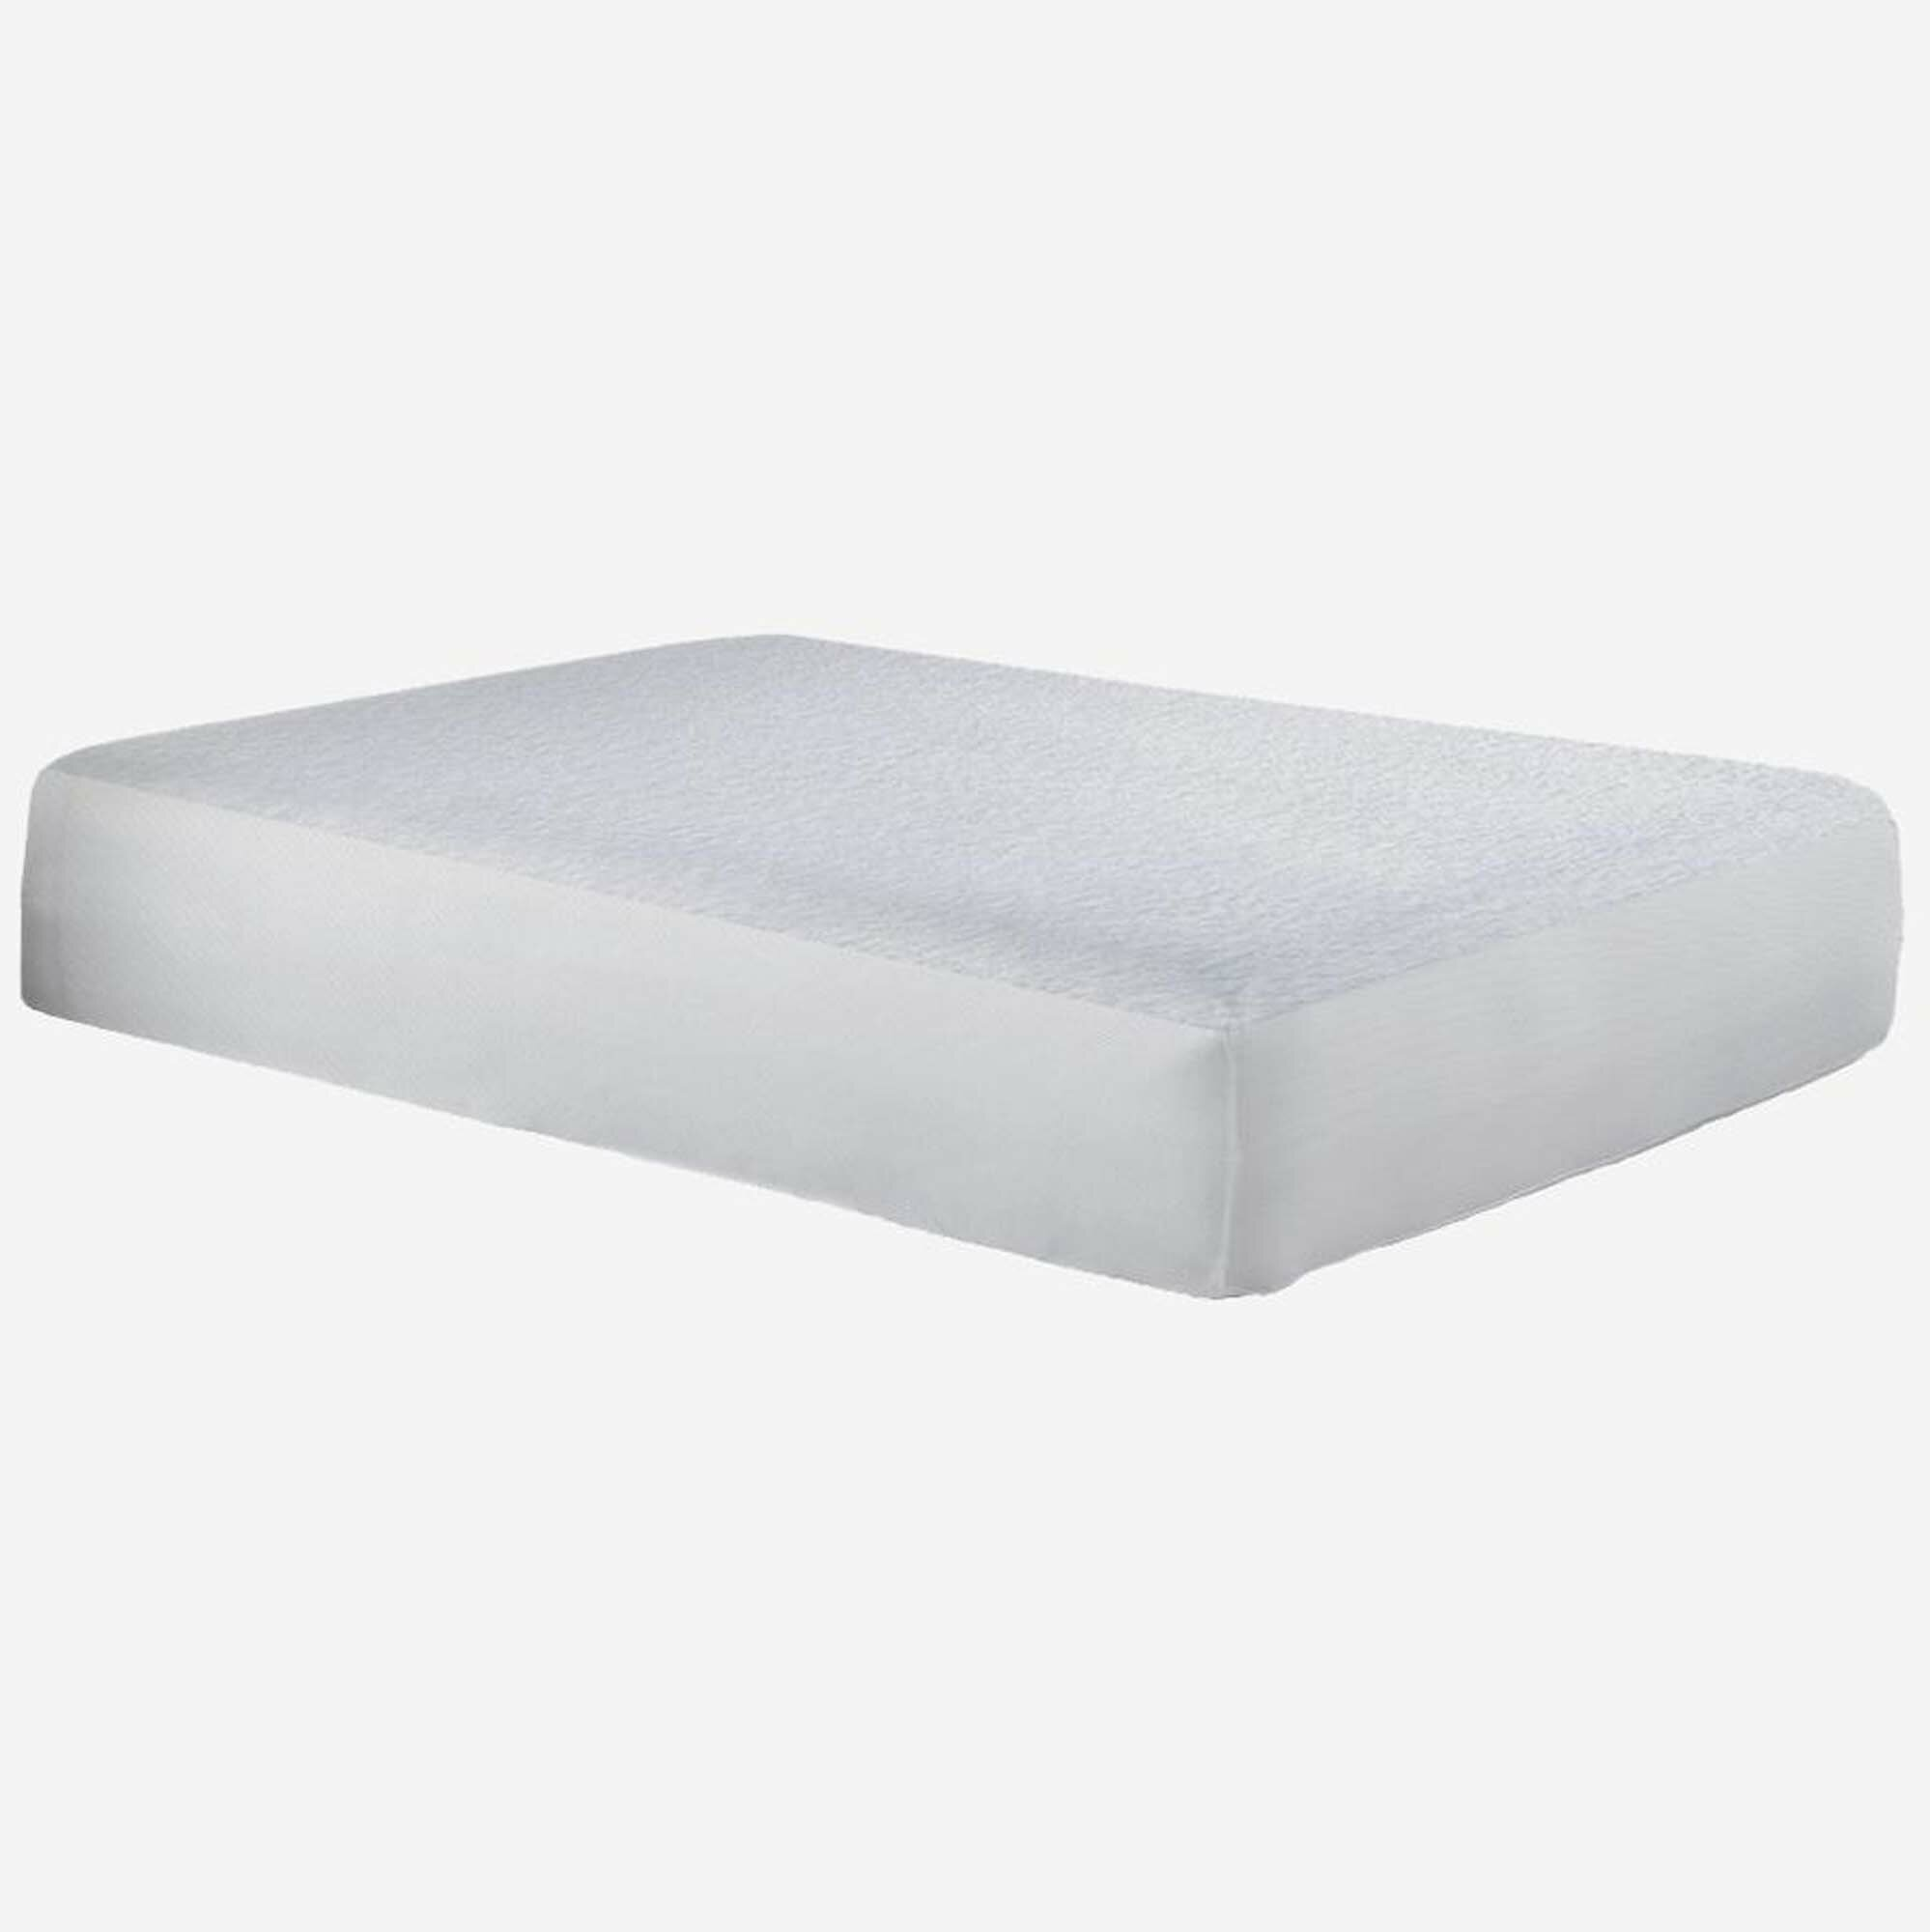 Arsuite Hypoallergenic And Waterproof Mattress Cover